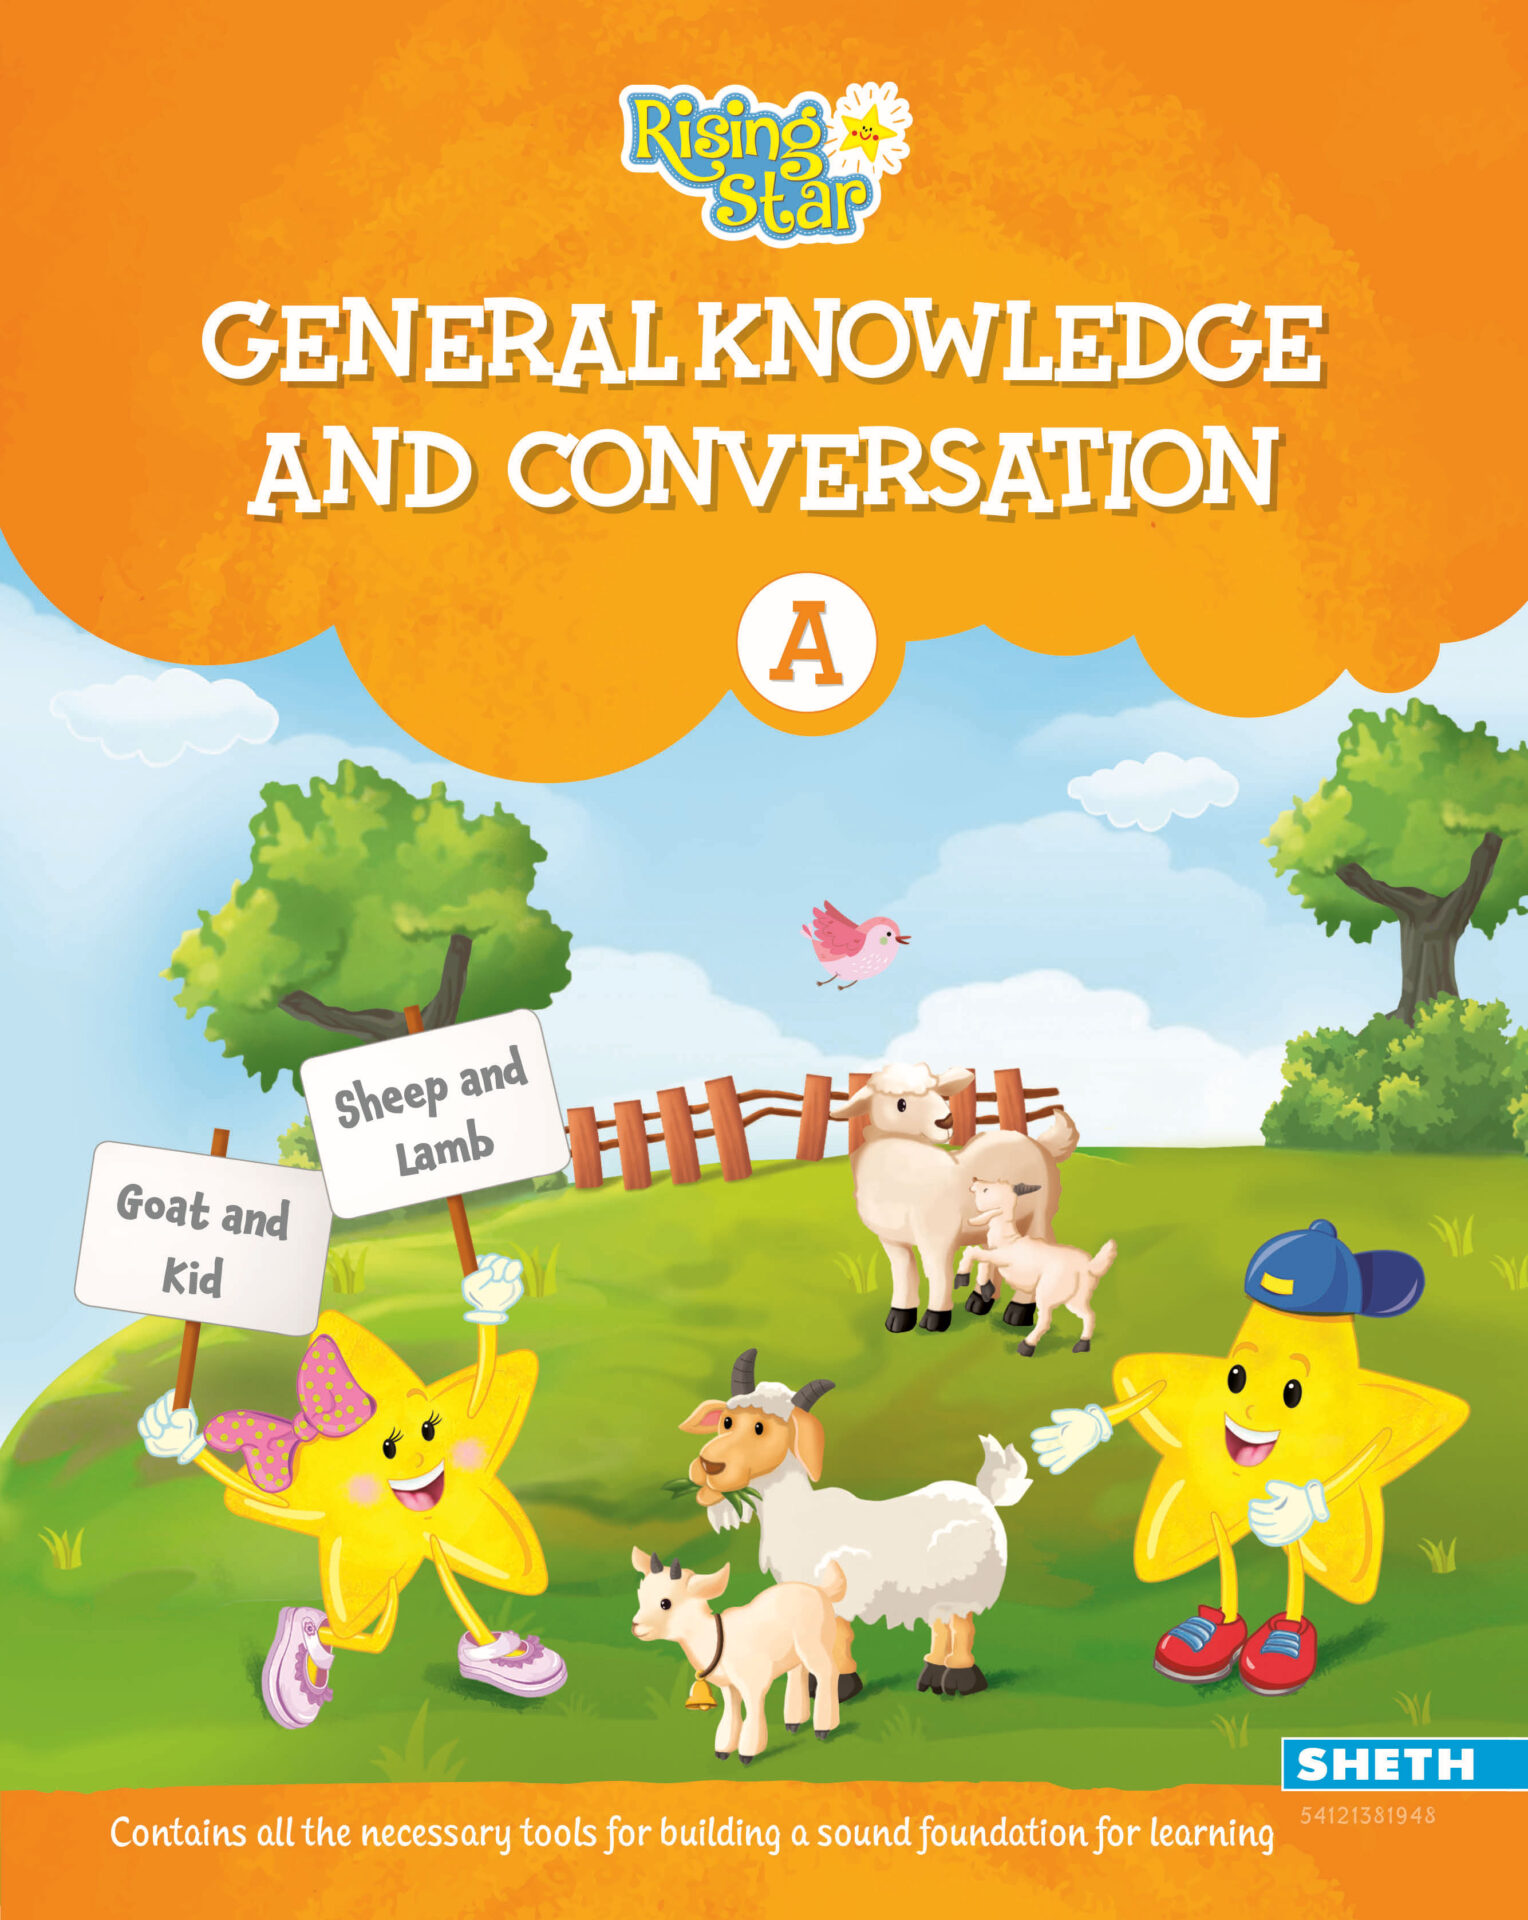 Rising Star General Knowledge and Conversation A 1 1